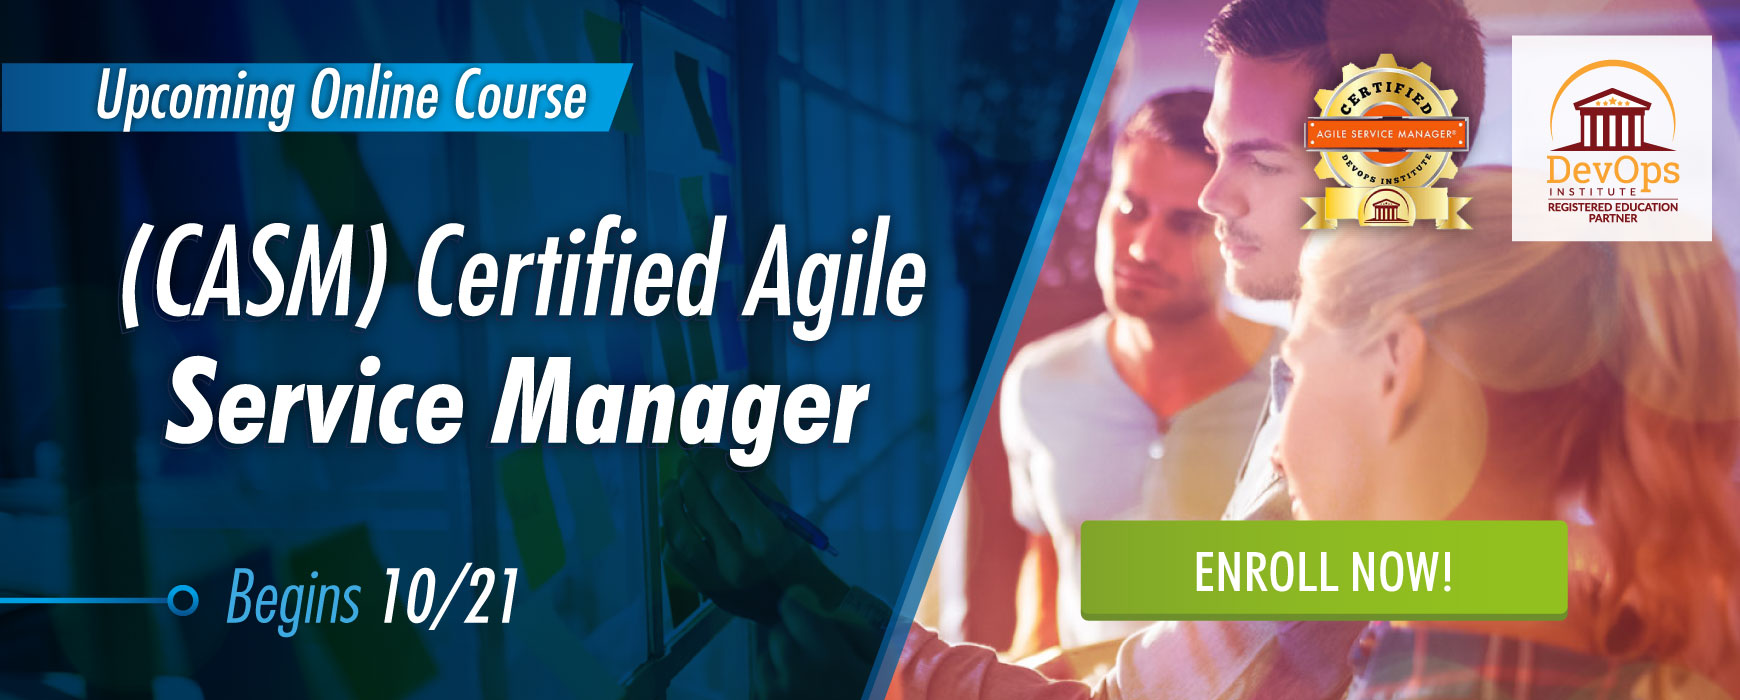 Certified Agile Service Manager Begins 10/21